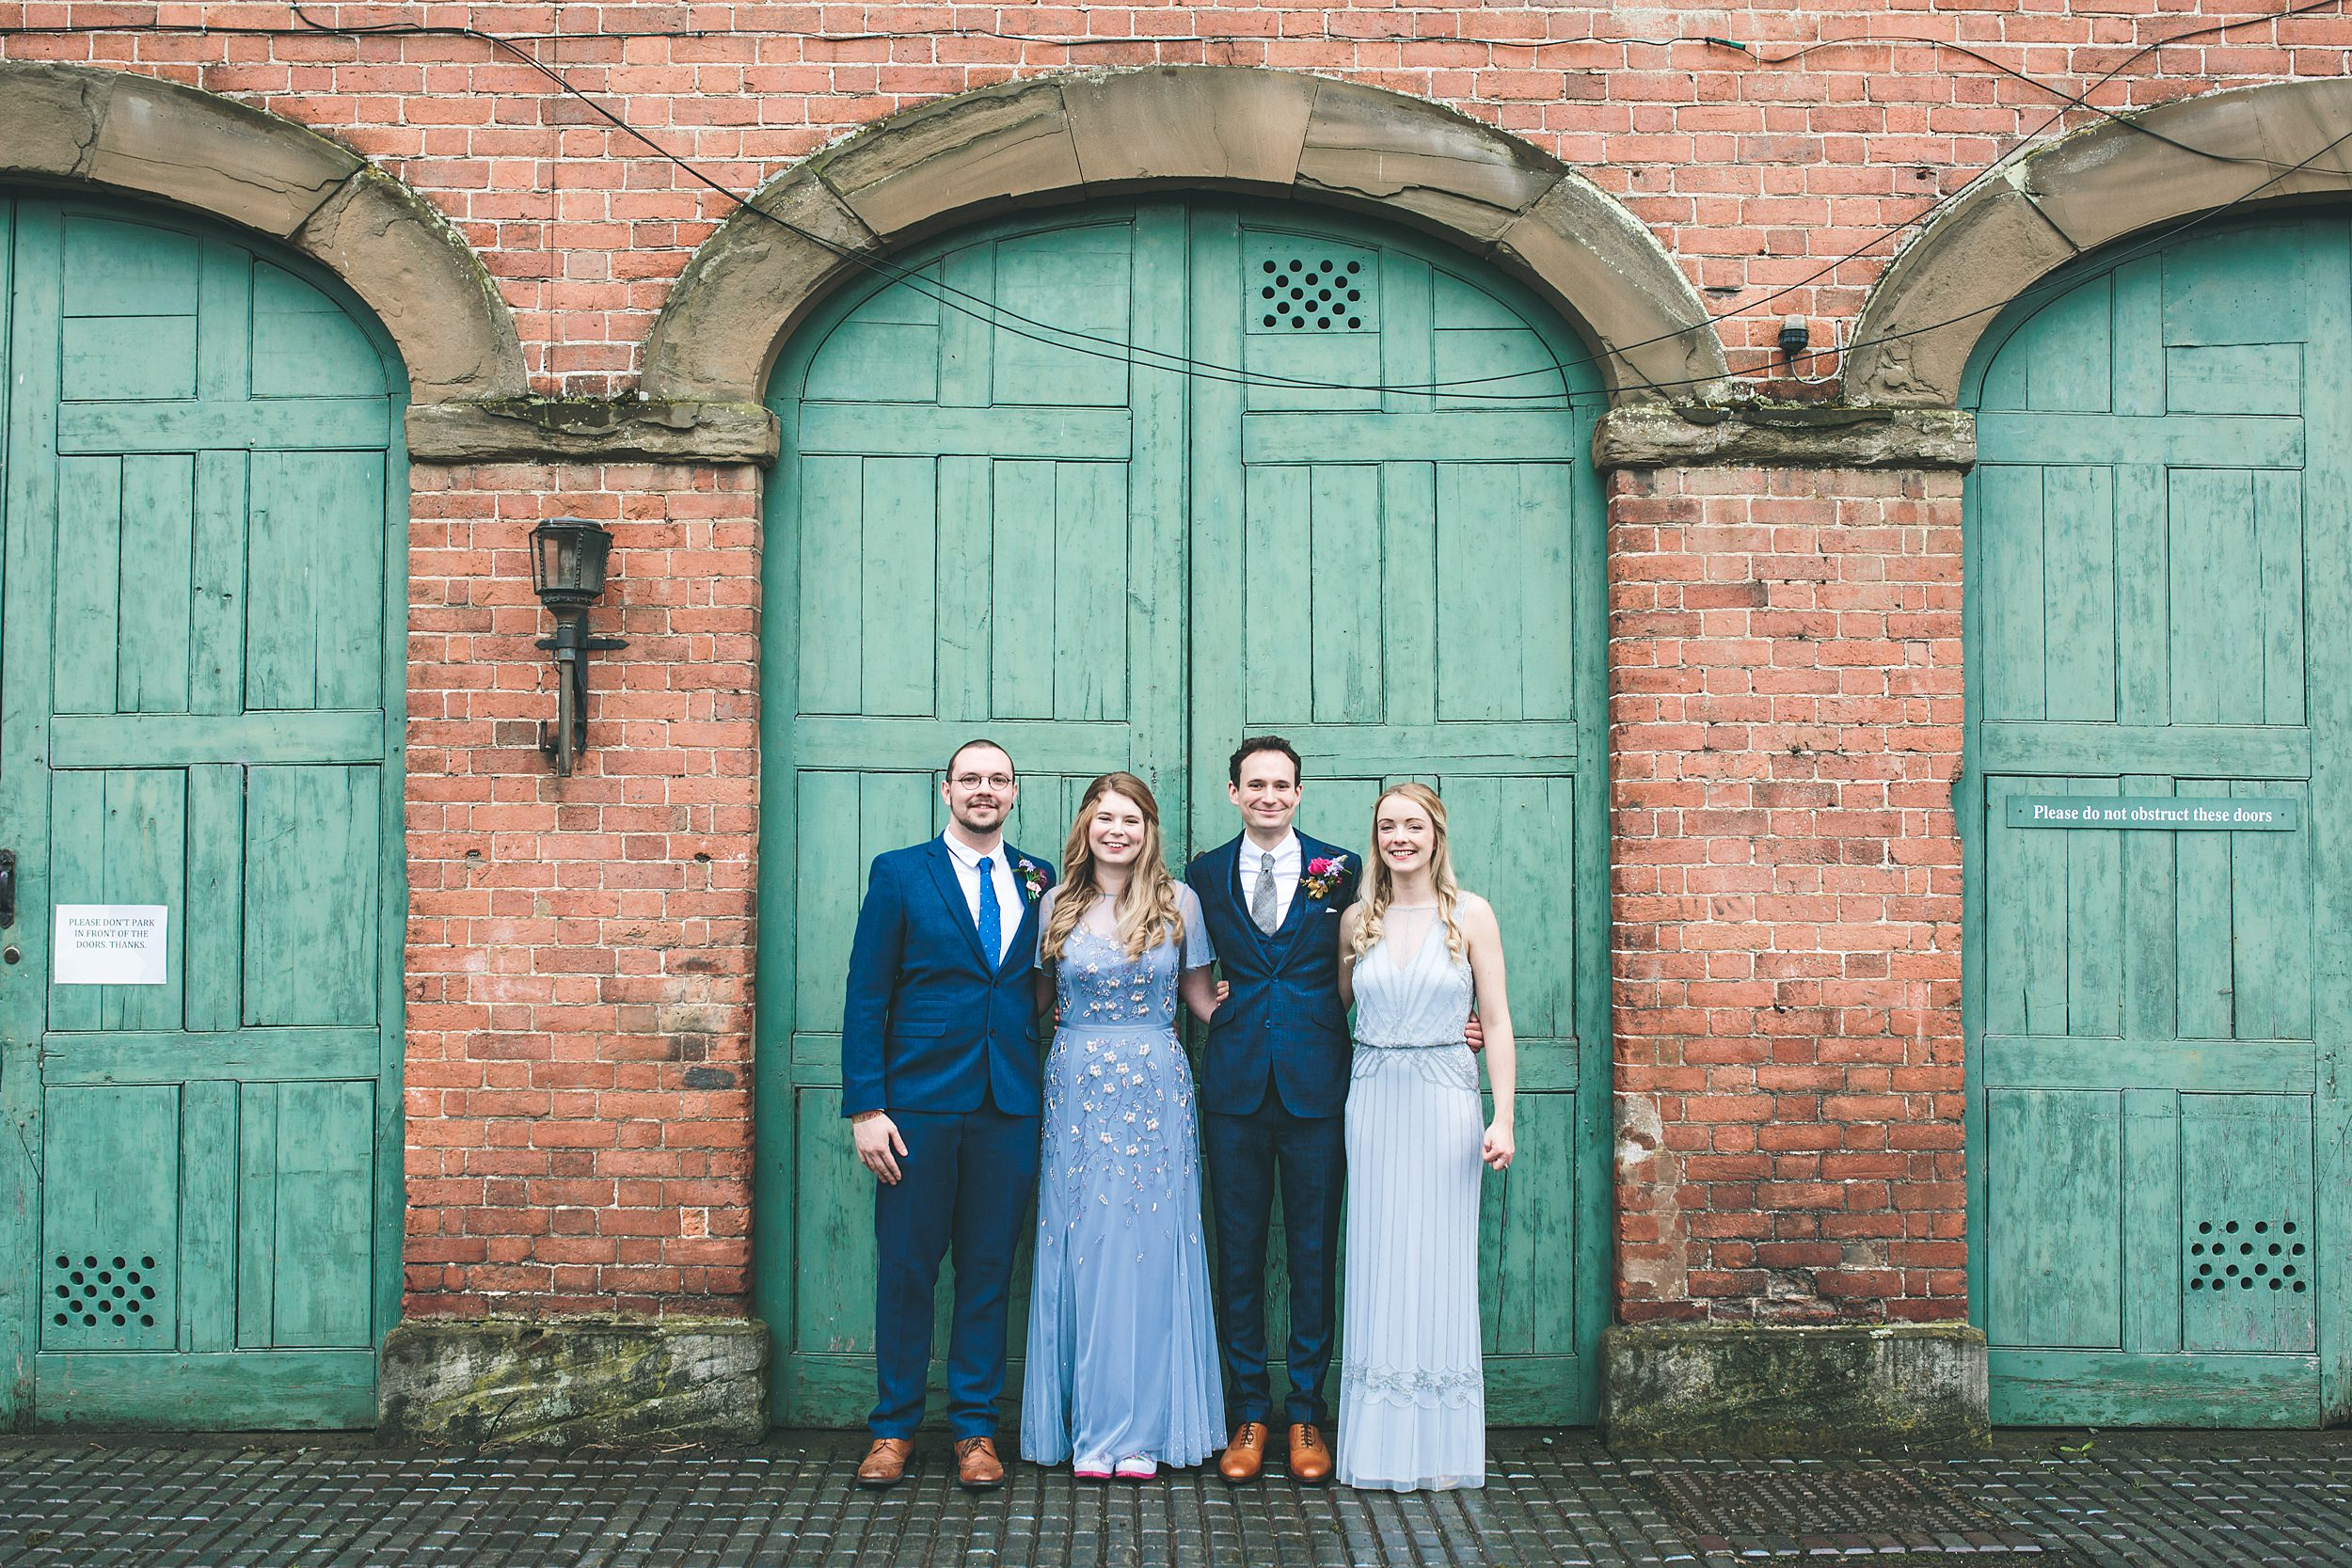 Wes Anderson wedding photographer group